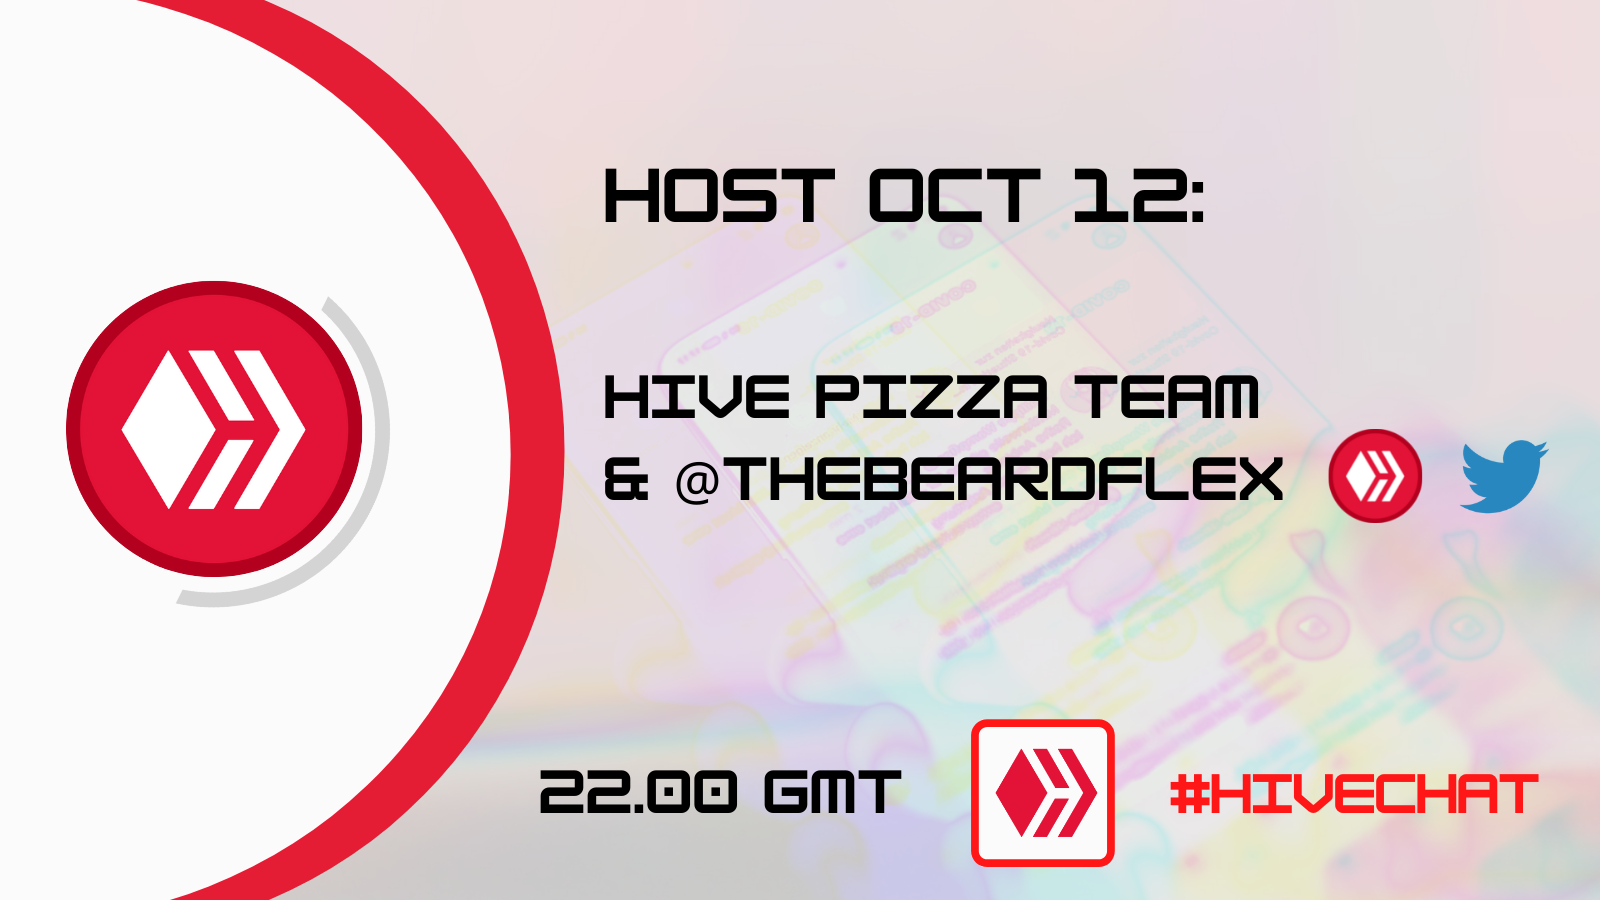 October 12th HIVECHAT announcement.png